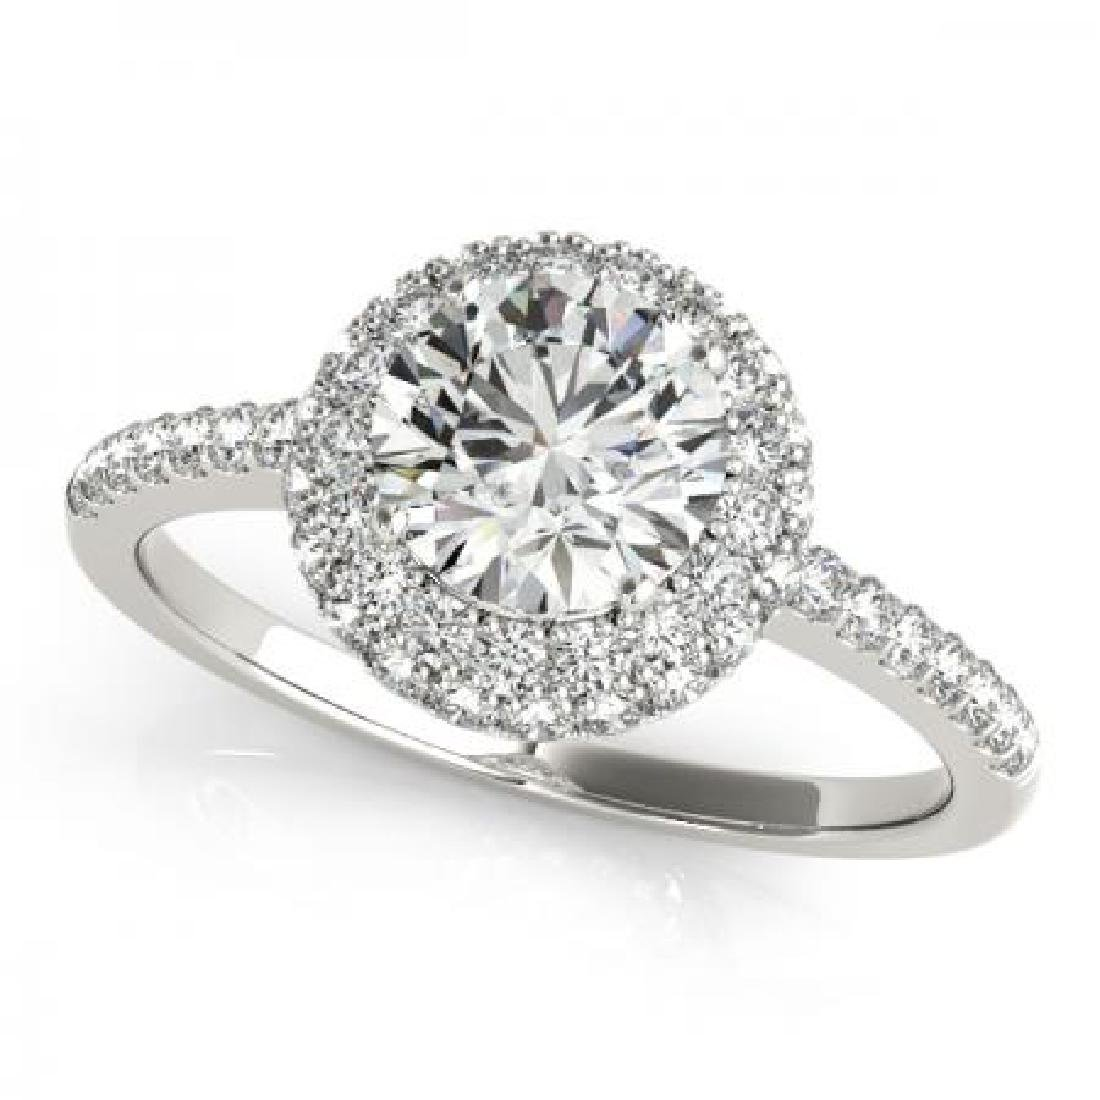 CERTIFIED PLATINUM 1.84 CT G-H/VS-SI1 DIAMOND HALO ENGA